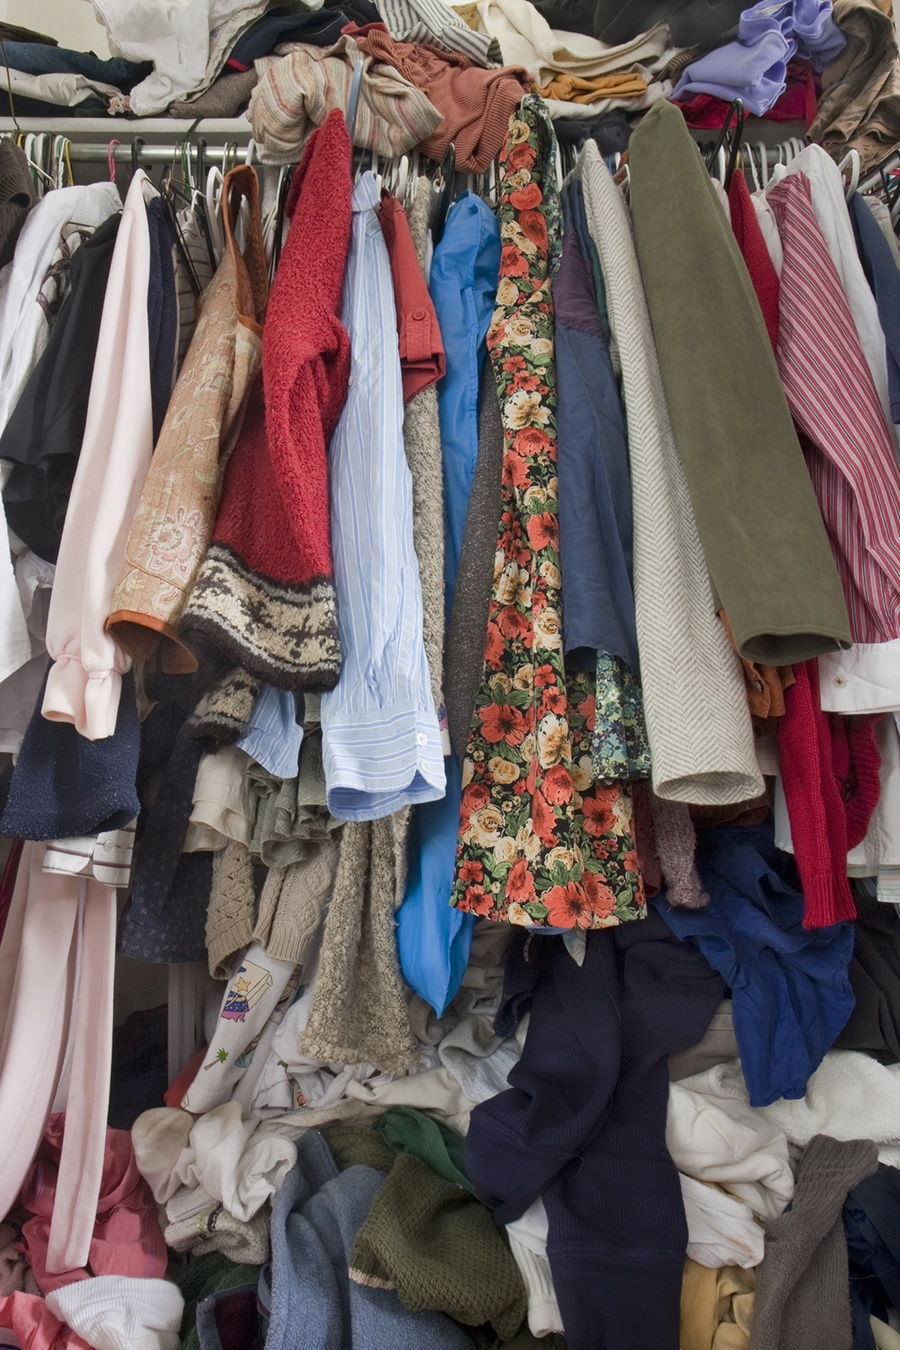 ugly closet due to too much hanging clothes bunched together | Innovate Home Org | #MessyCloset #ClosetOrganize #Declutter #Closetsystem